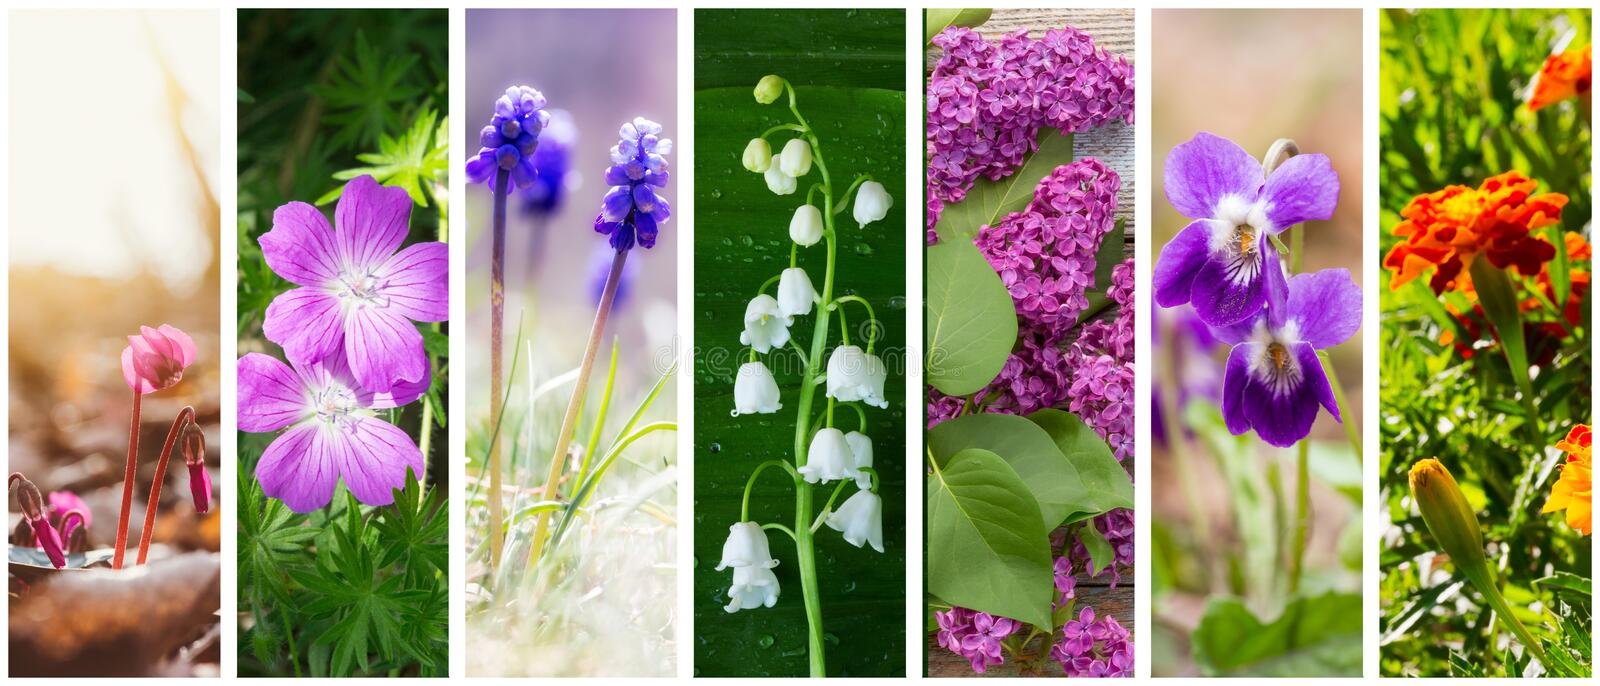 A collage of spring and summer flowers: cyclamen, Lily of the valley, lilacs, marigolds, violets and geranium forest royalty free stock image